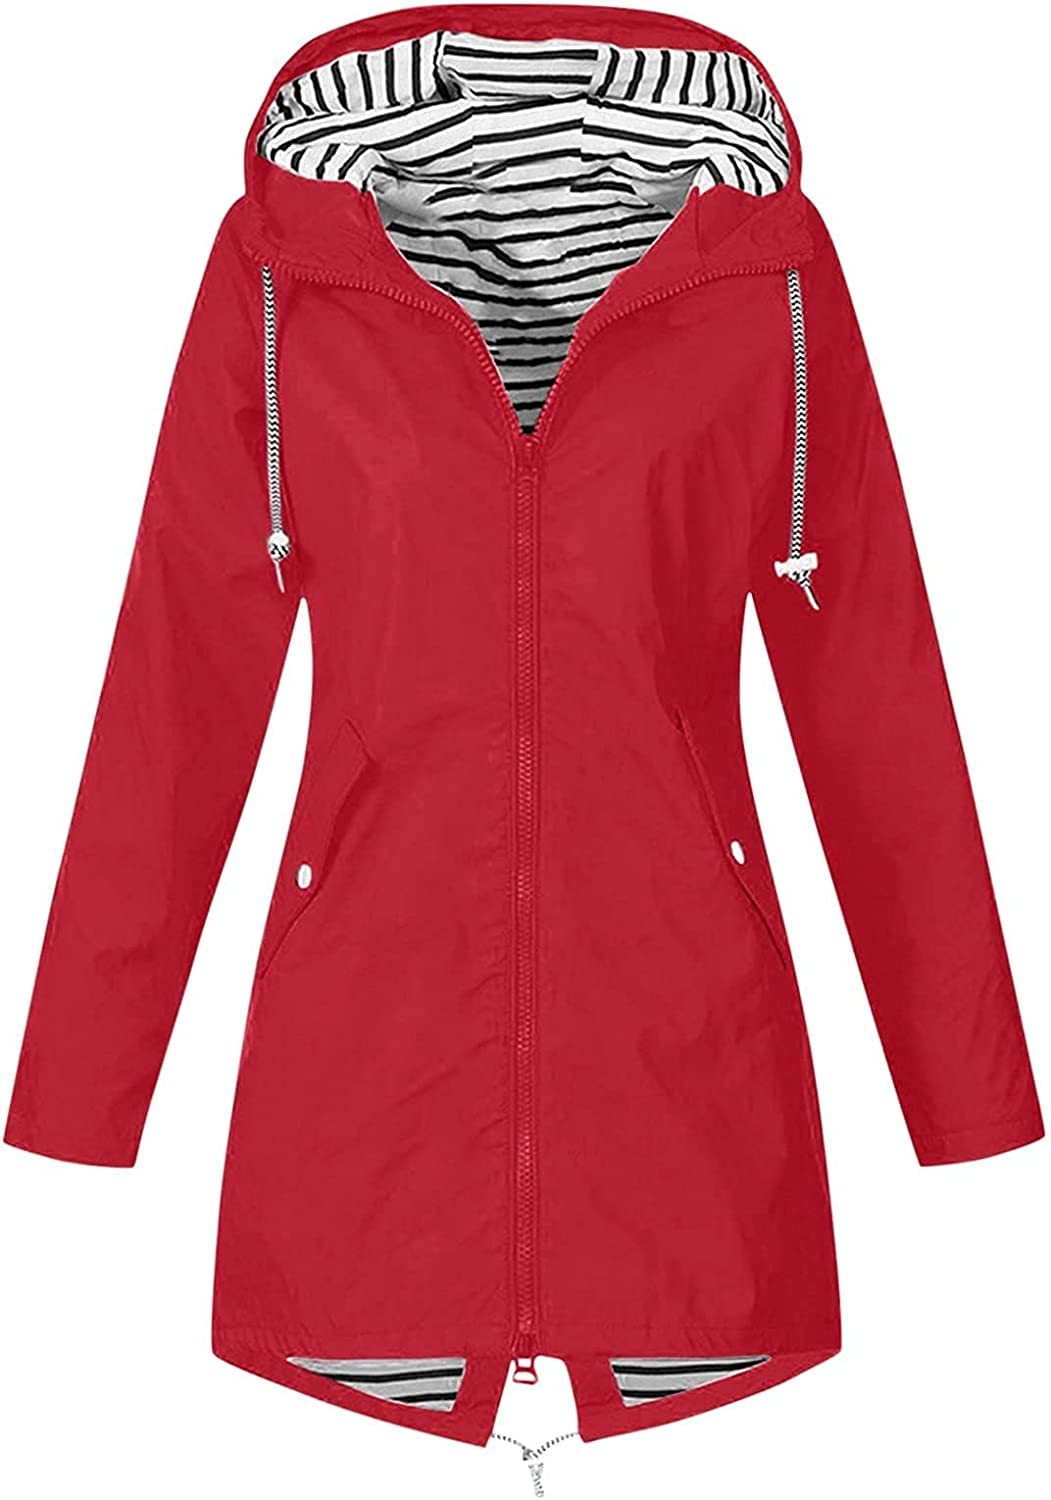 Staron Women Jacket with Hood Casual Solid Hoo Tunic Zip Up Beauty products Full Charlotte Mall